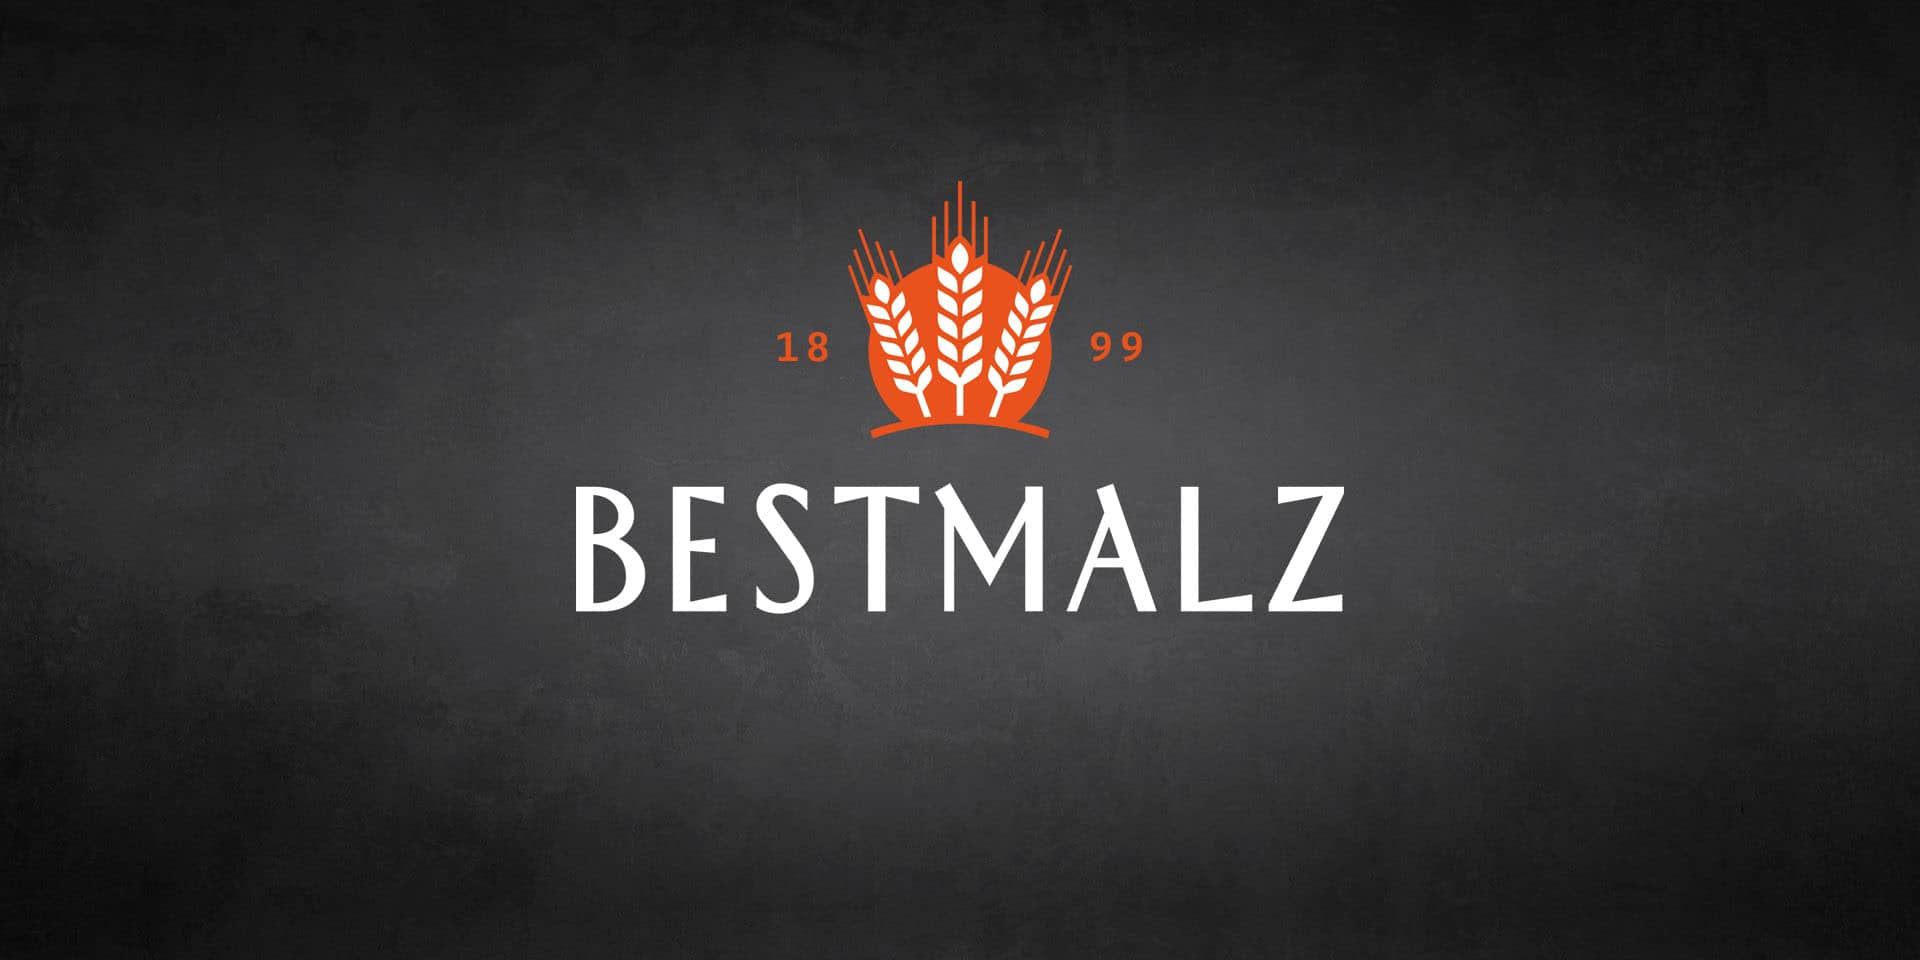 BESTMALZ - For the best beer